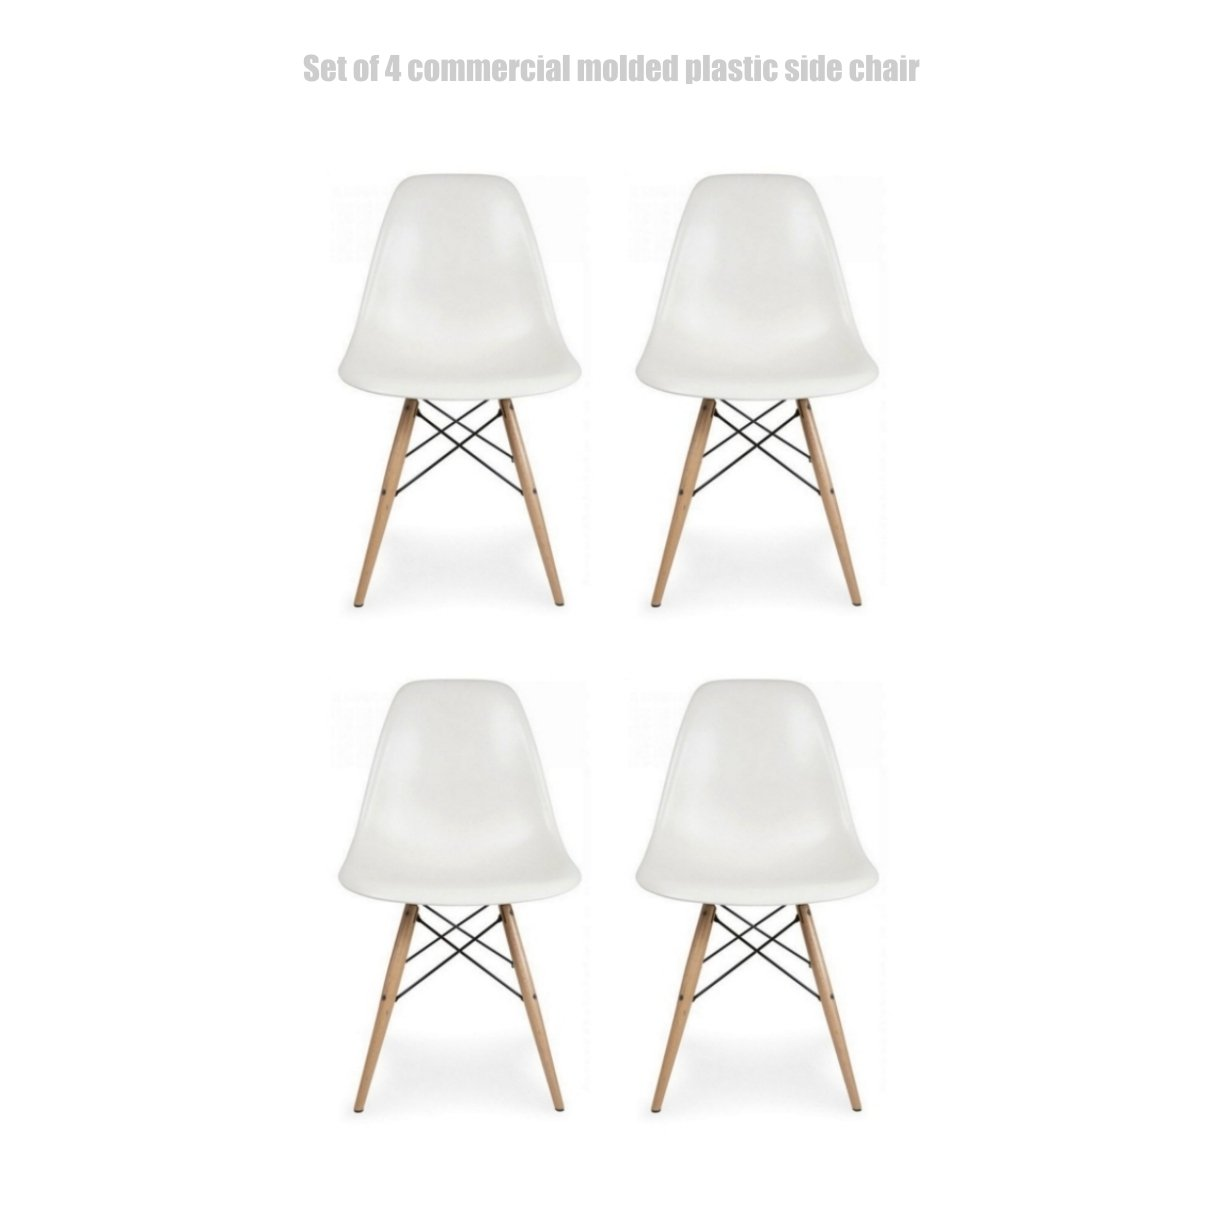 Classic Vintage Style Dining Chair Molded Plastic Flexible Backs Support Deep Seat Pockets Straight Wooden Dowel Legs Innovative Side Chair - Set of 4 White #1445